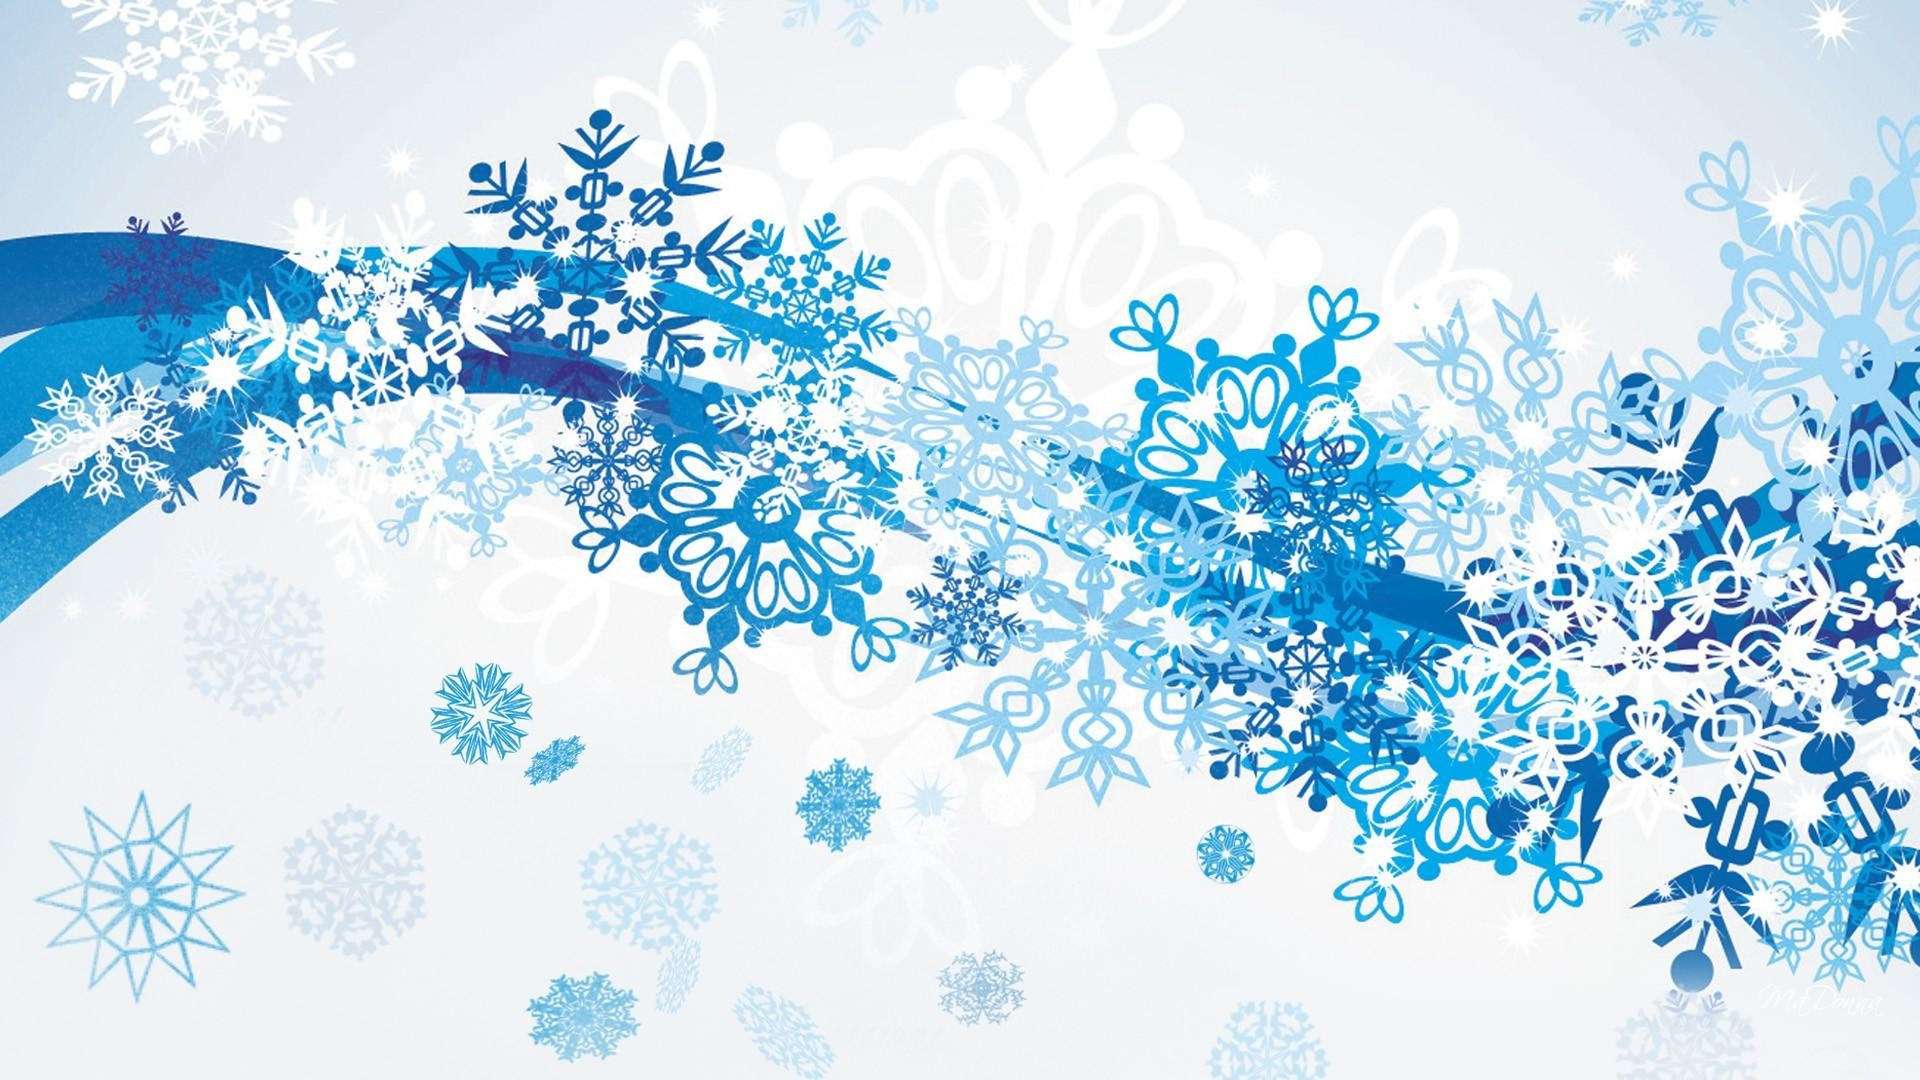 Res: 1920x1080, Winter Snow Scatter >> HD Wallpaper, get it now!